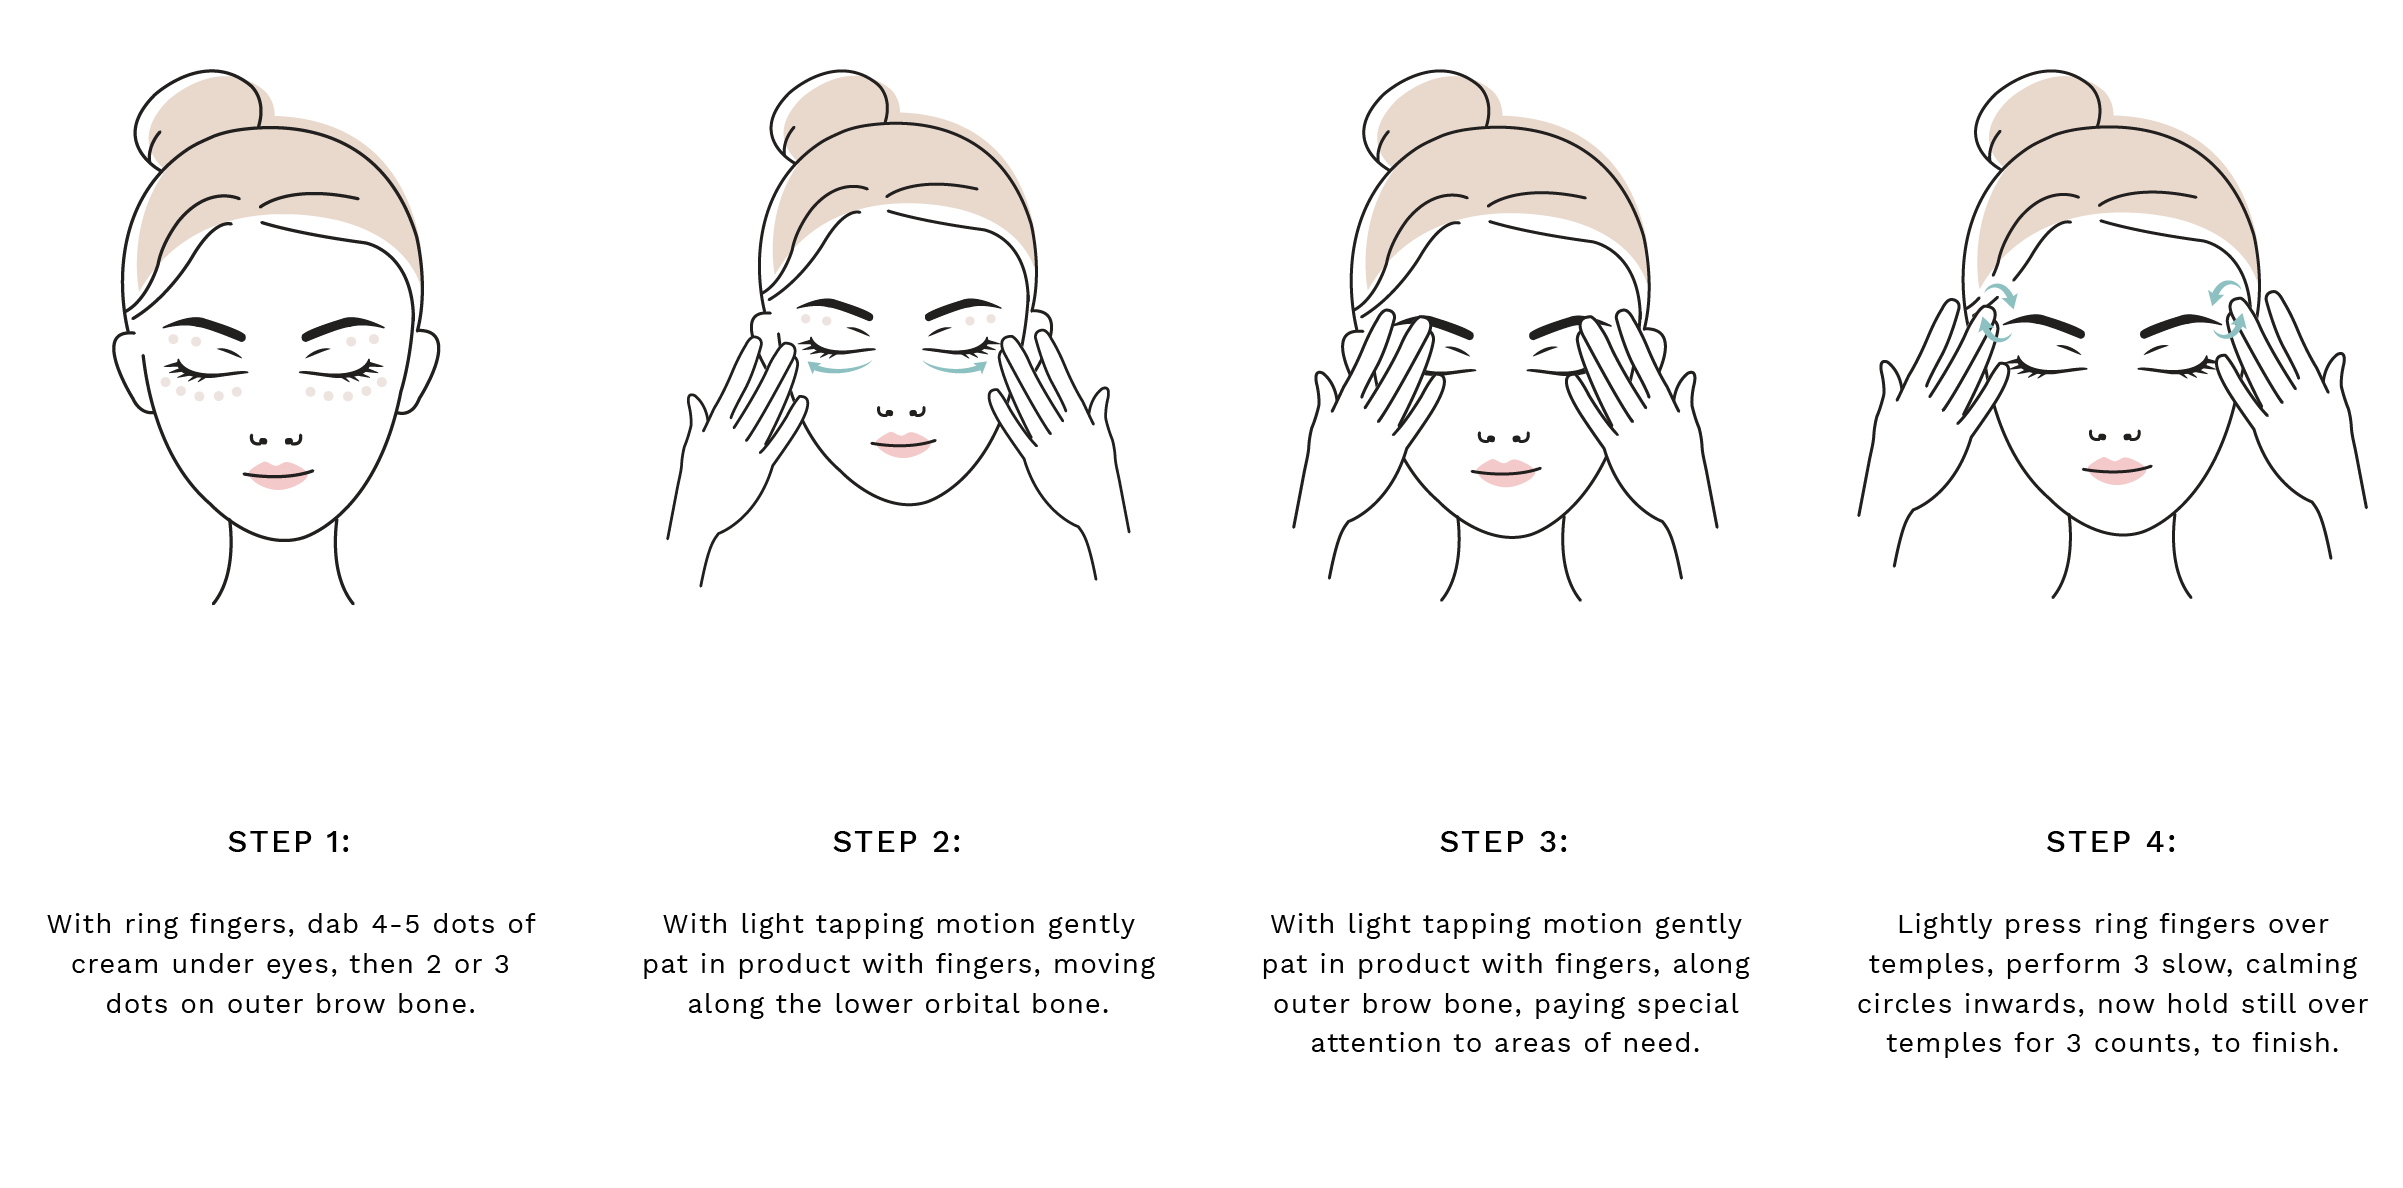 Step 1:  With ring fingers, dab 4-5 dots of cream under eyes, then 2 or 3 dots on outer brow bone. Step 2: With light tapping motion gently pat in product with fingers, moving along the lower orbital bone. Step 3: With light tapping motion gently pat in product with fingers, along outer brow bone, paying special attention to areas of need. Step 4: Lightly press ring fingers over temples, perform 3 slow, calming circles inwards, now hold still over temples for 3 counts, to finish.